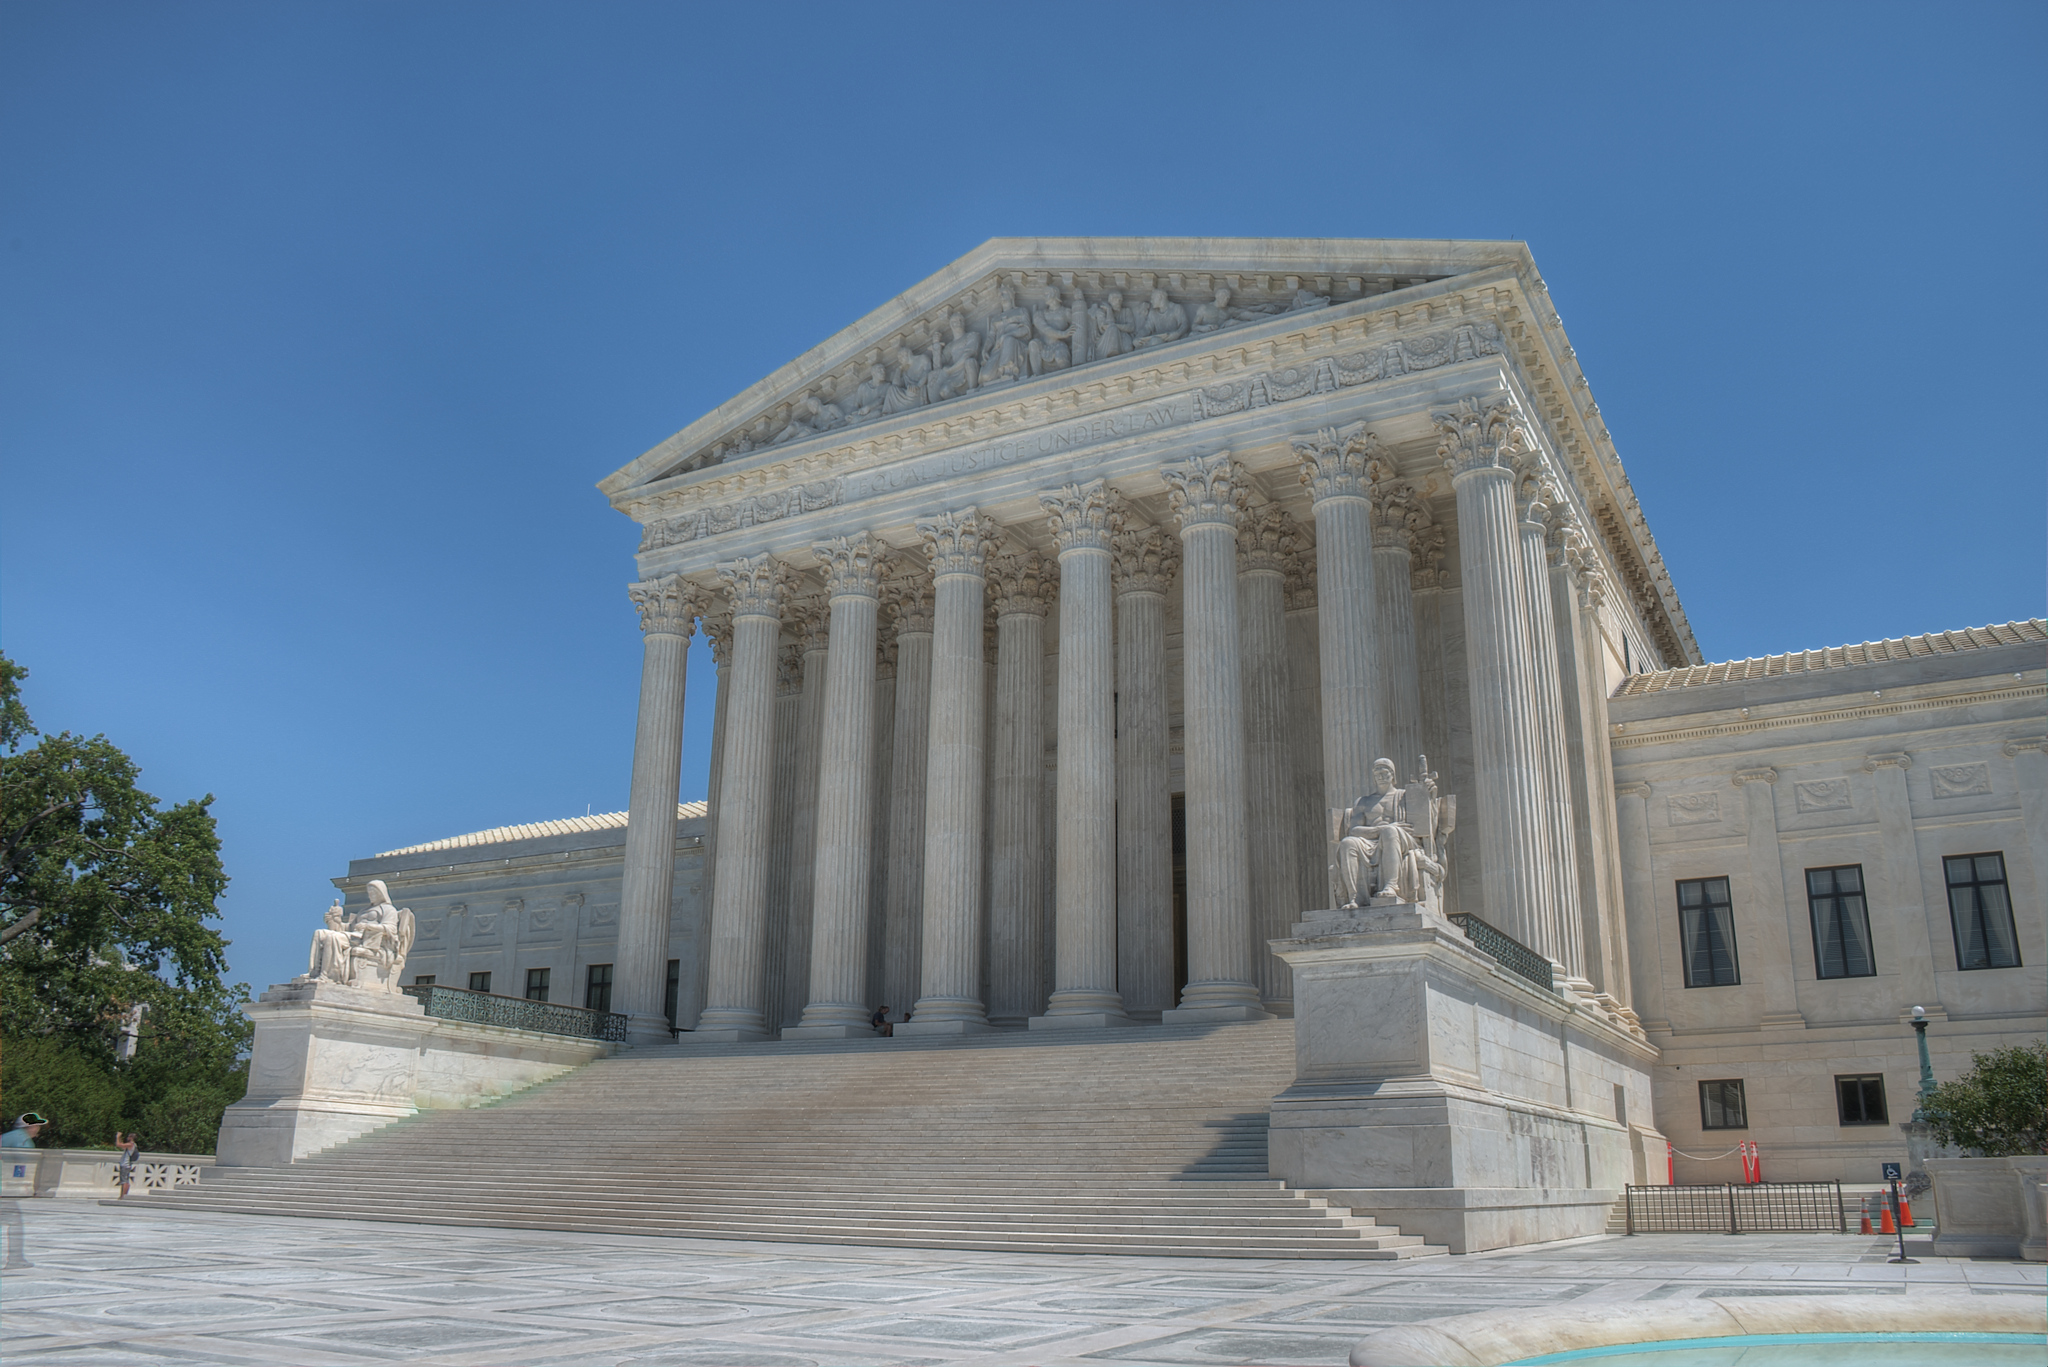 File:15-23-0154, Supreme Court - panoramio.jpg - Wikimedia Commons